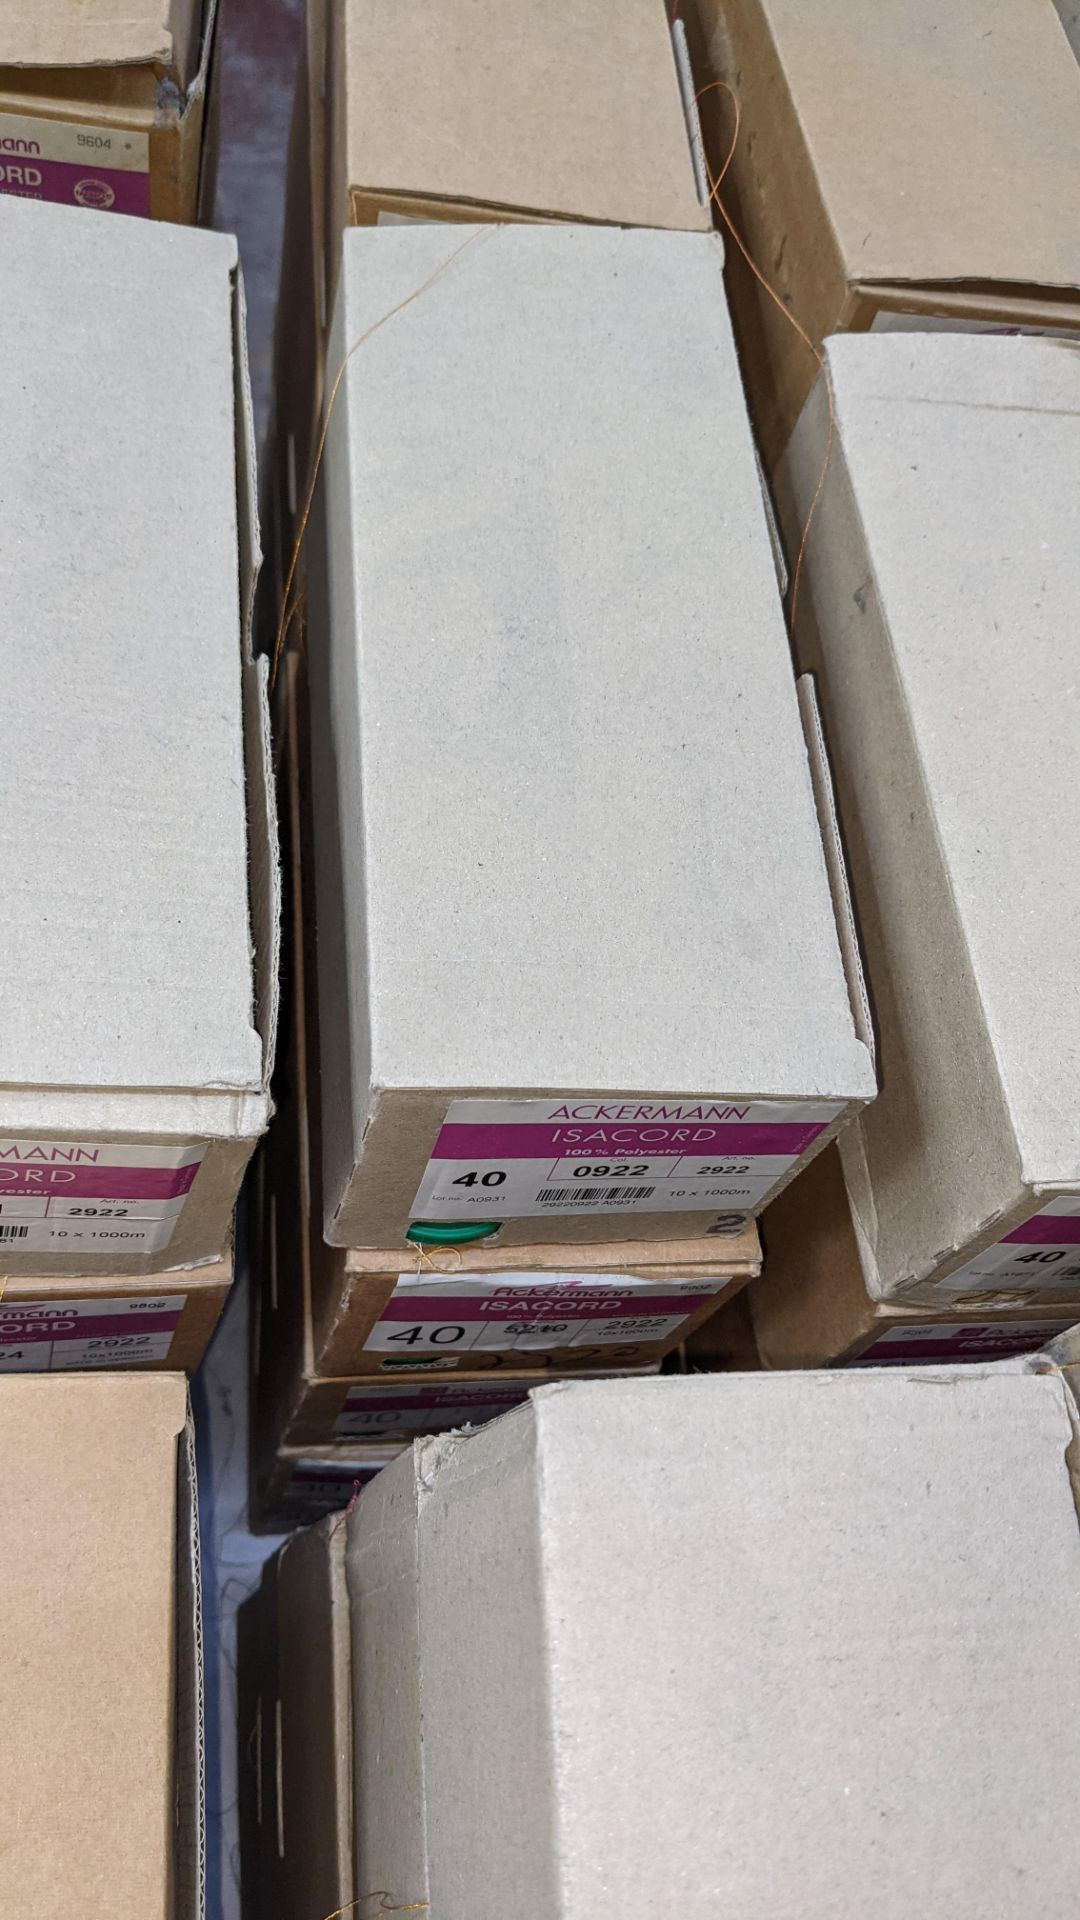 20 boxes of Ackermann Isacord (40) polyester thread - Image 5 of 9